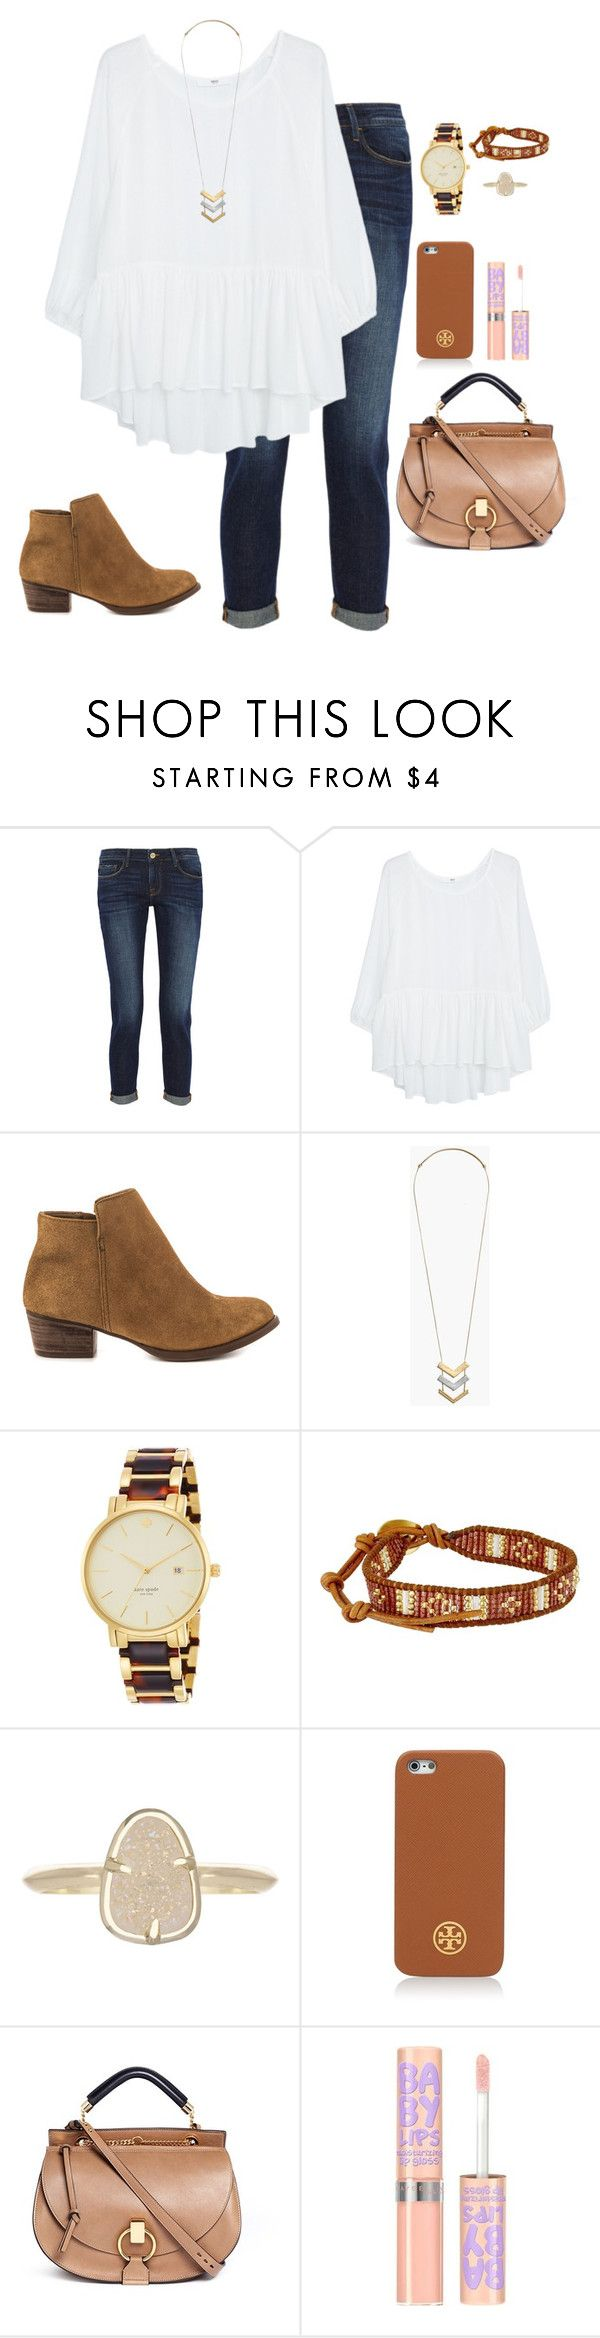 """""""shopping"""" by apemb ❤ liked on Polyvore featuring Frame Denim, MANGO, Jessica Simpson, Madewell, Kate Spade, Chan Luu, Kendra Scott, Tory Burch, Chloé and Maybelline"""